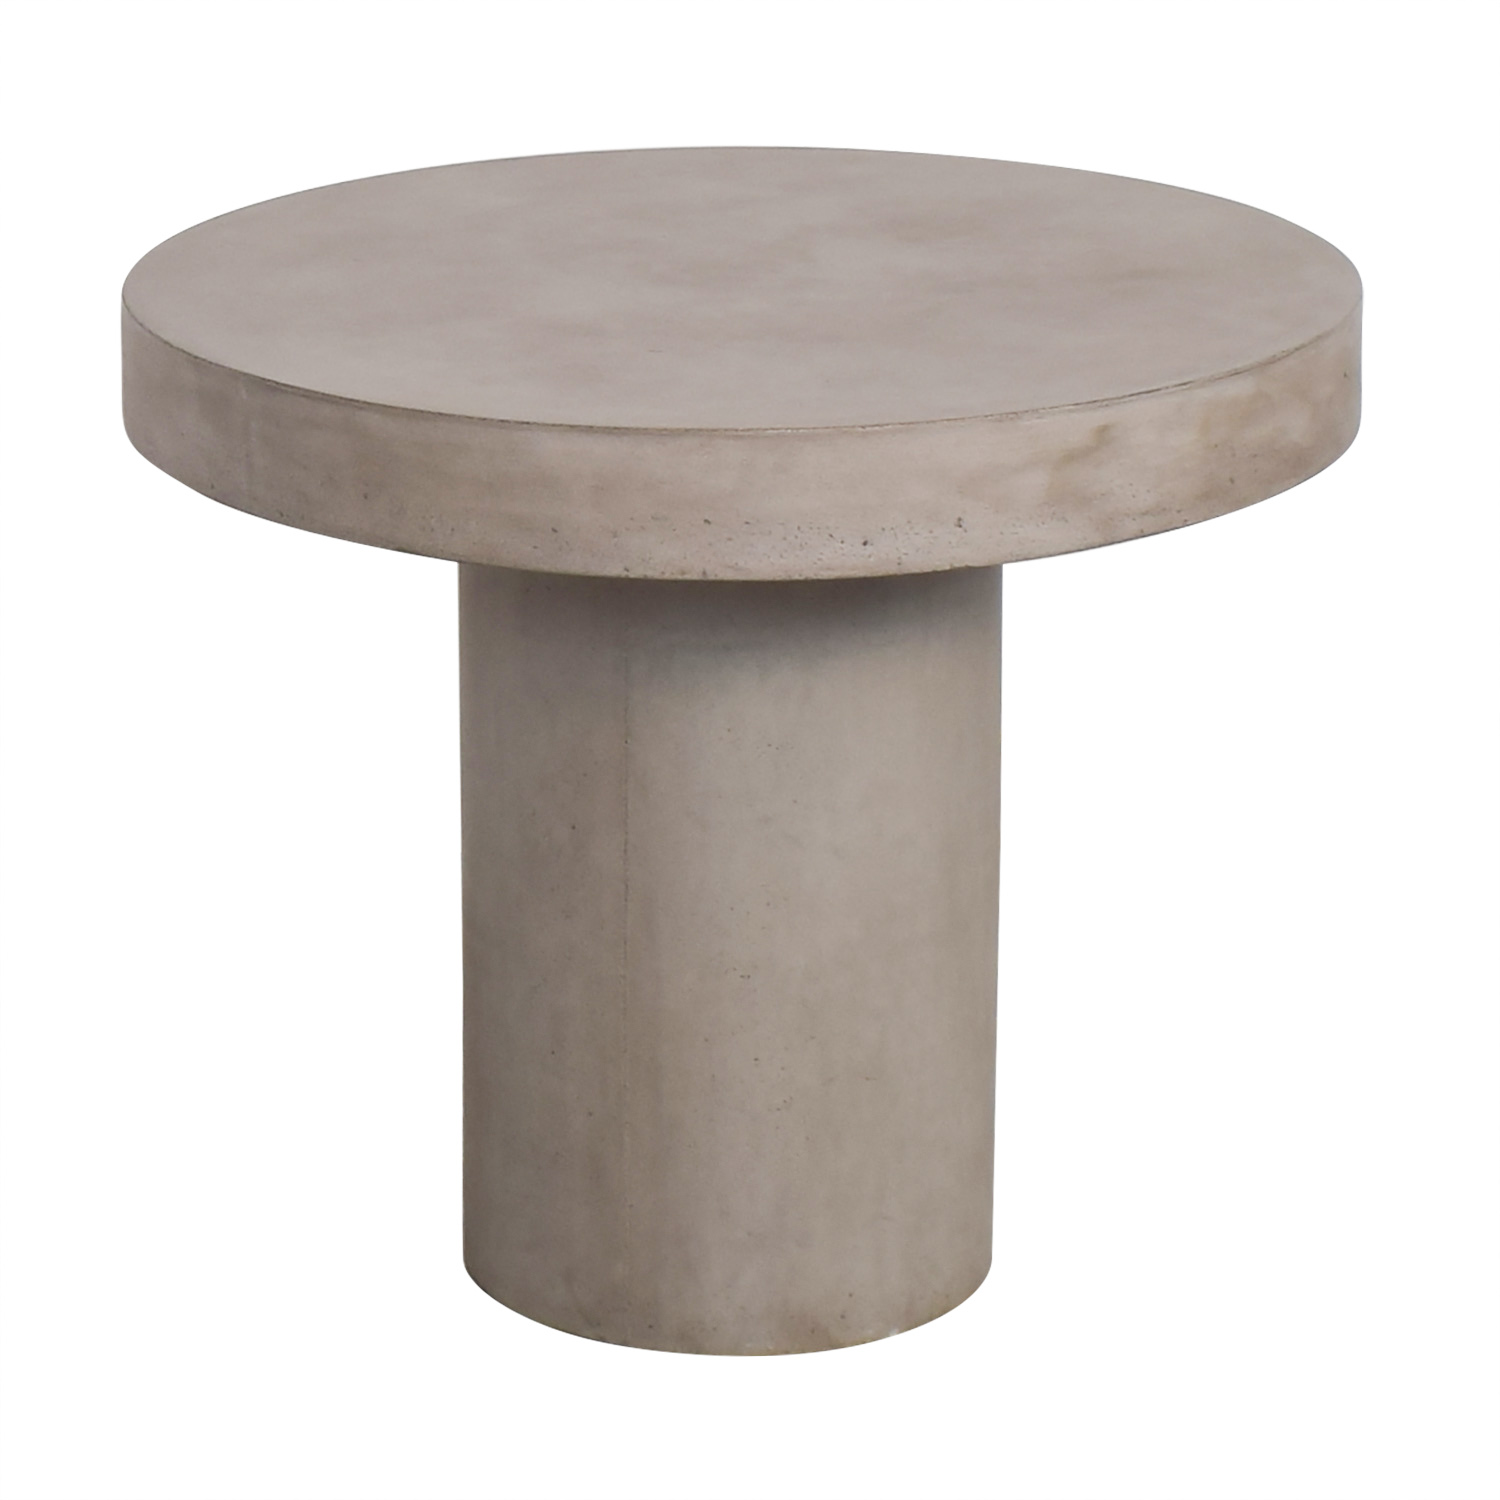 CB2 Fuze Concrete Bistro Table / Dinner Tables